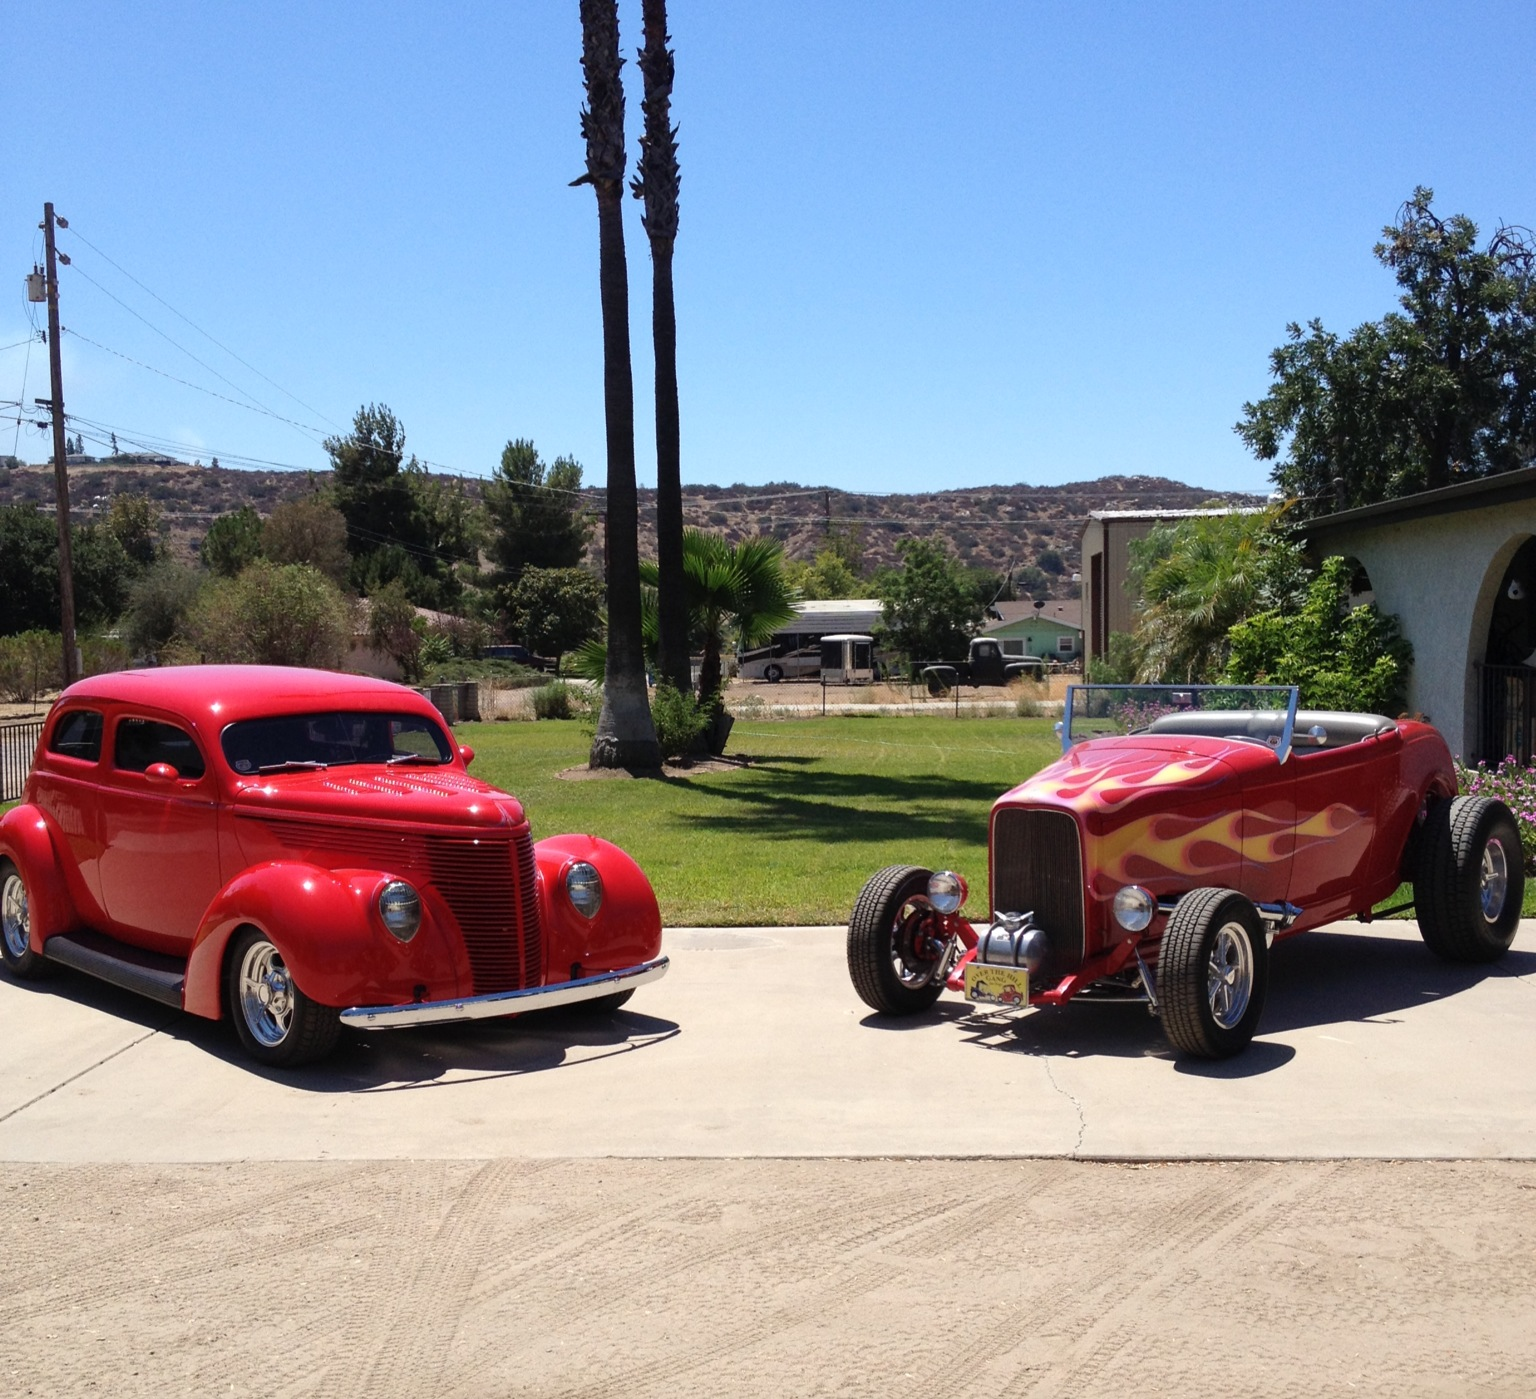 jay linda scarbrough s 32 ford roadster 28 ford sedan 55 chevy